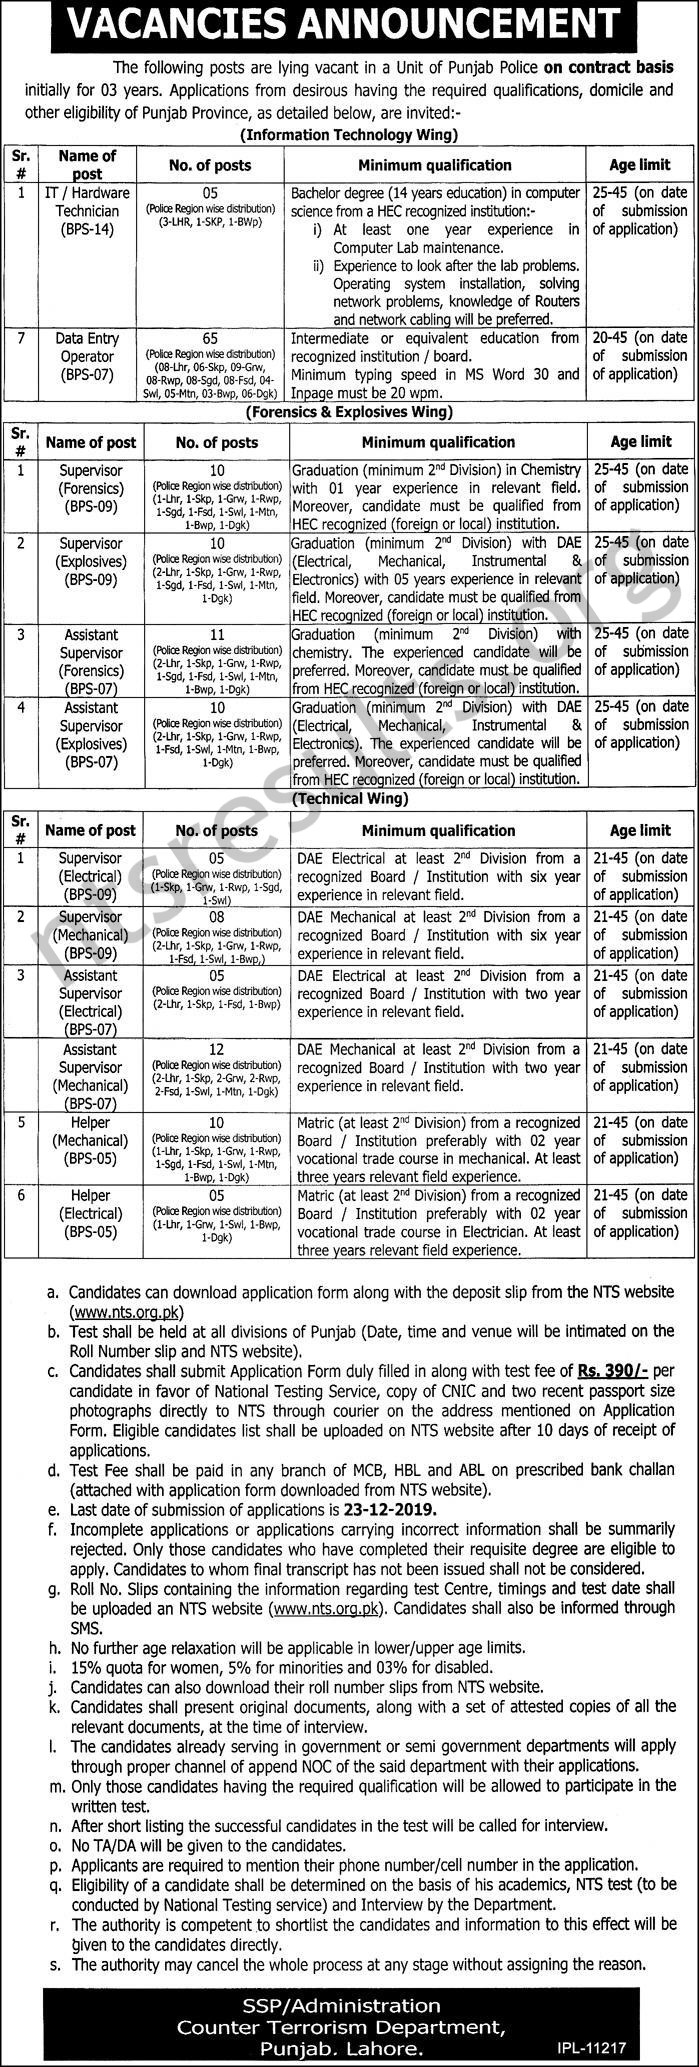 Counter Terrorism Department CTD Punjab Police Jobs Via NTS